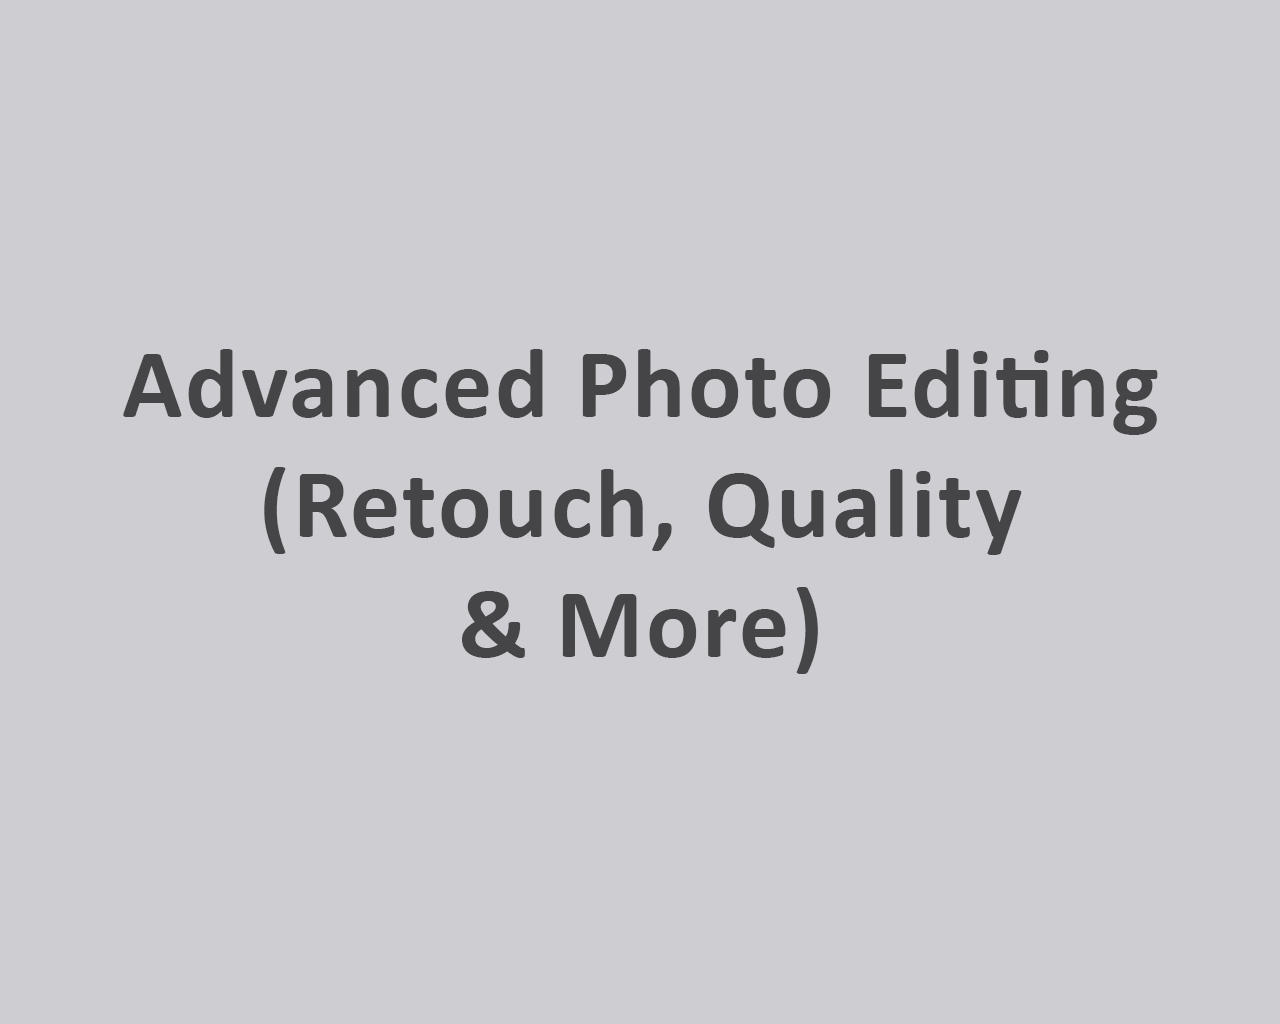 Advanced Photo Editing (Retouch, Quality & More) by odiusfly - 105980